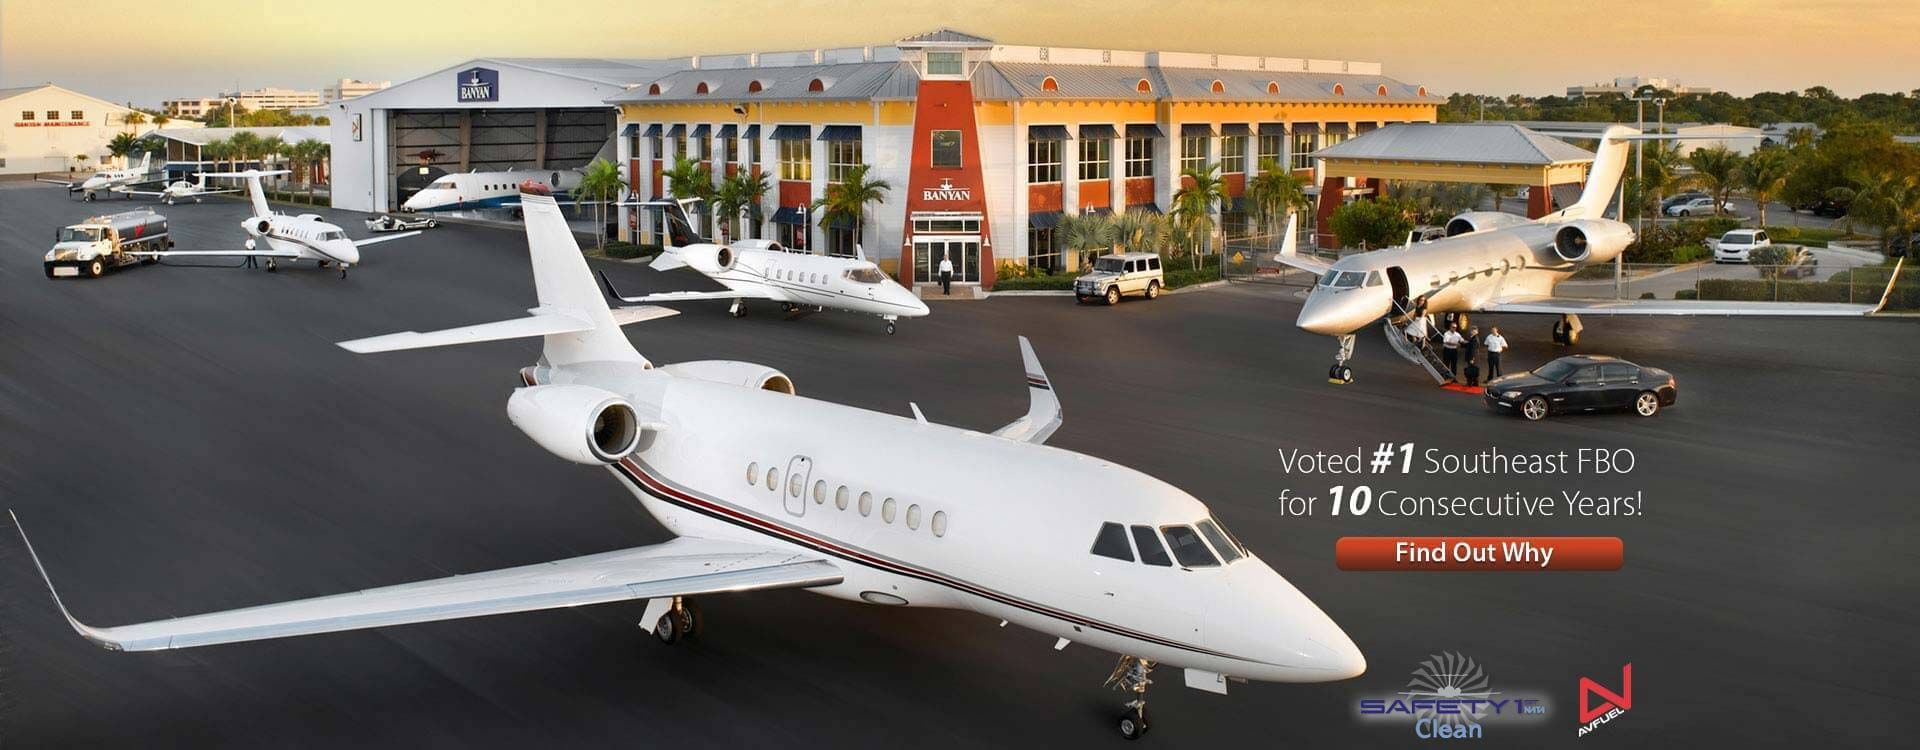 South Florida FBO Voted #1